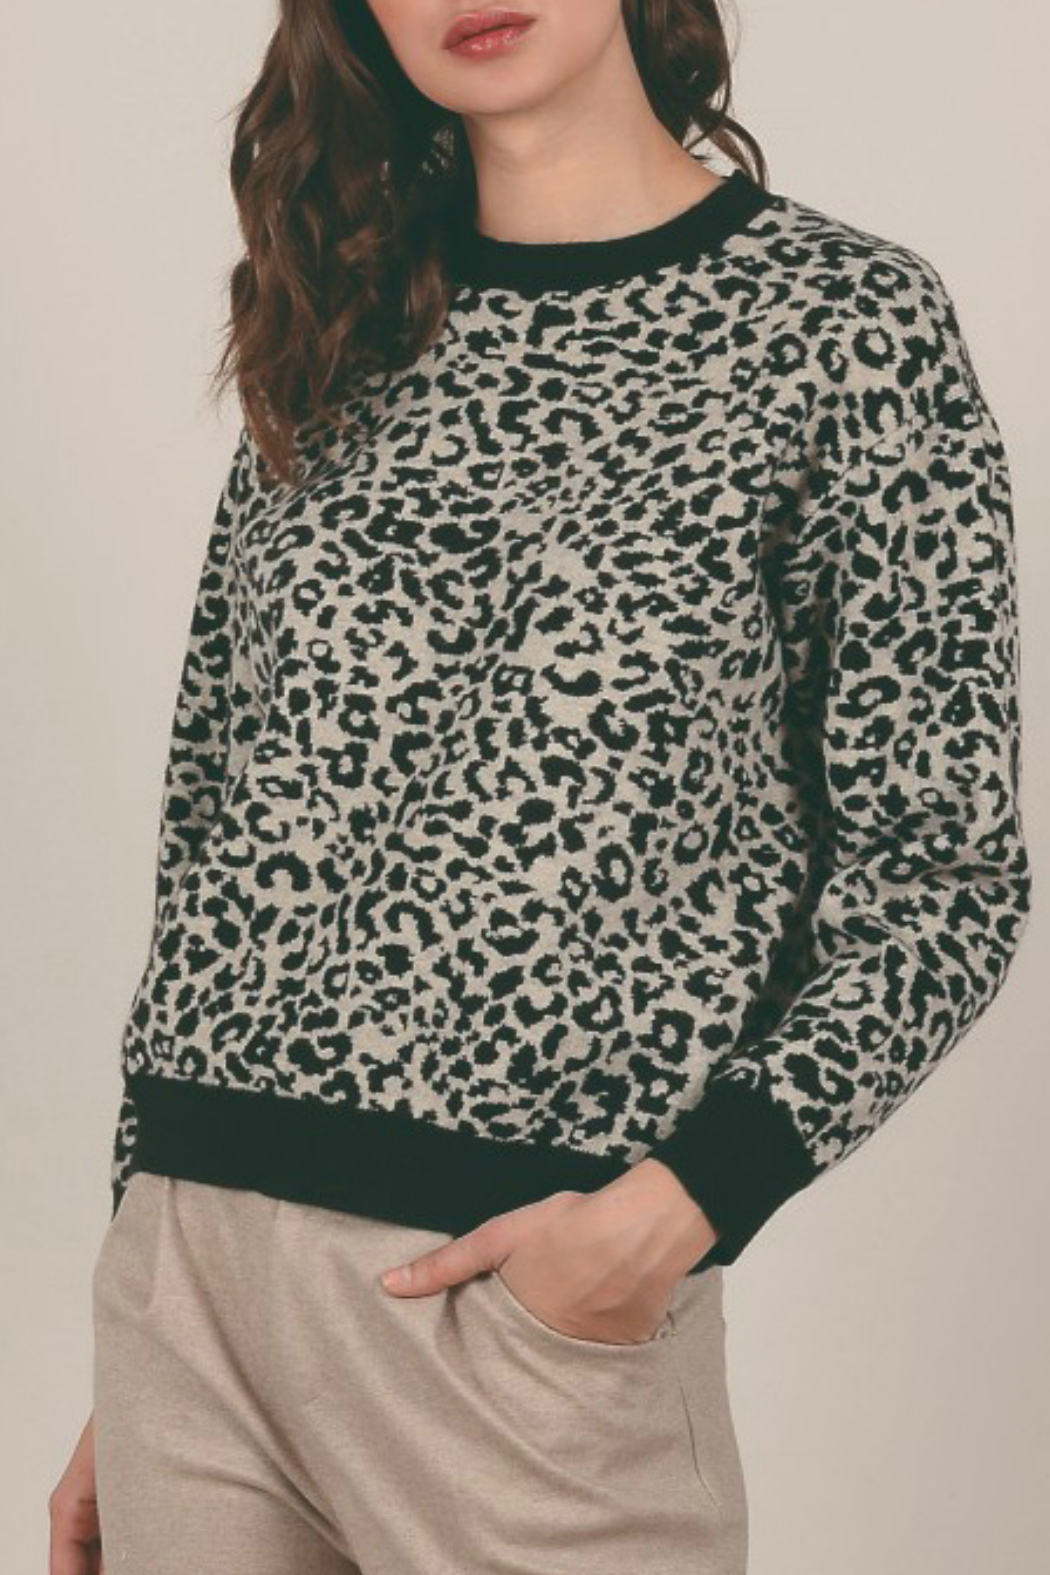 Molly Bracken Spotted Animal Print Sweater - Main Image